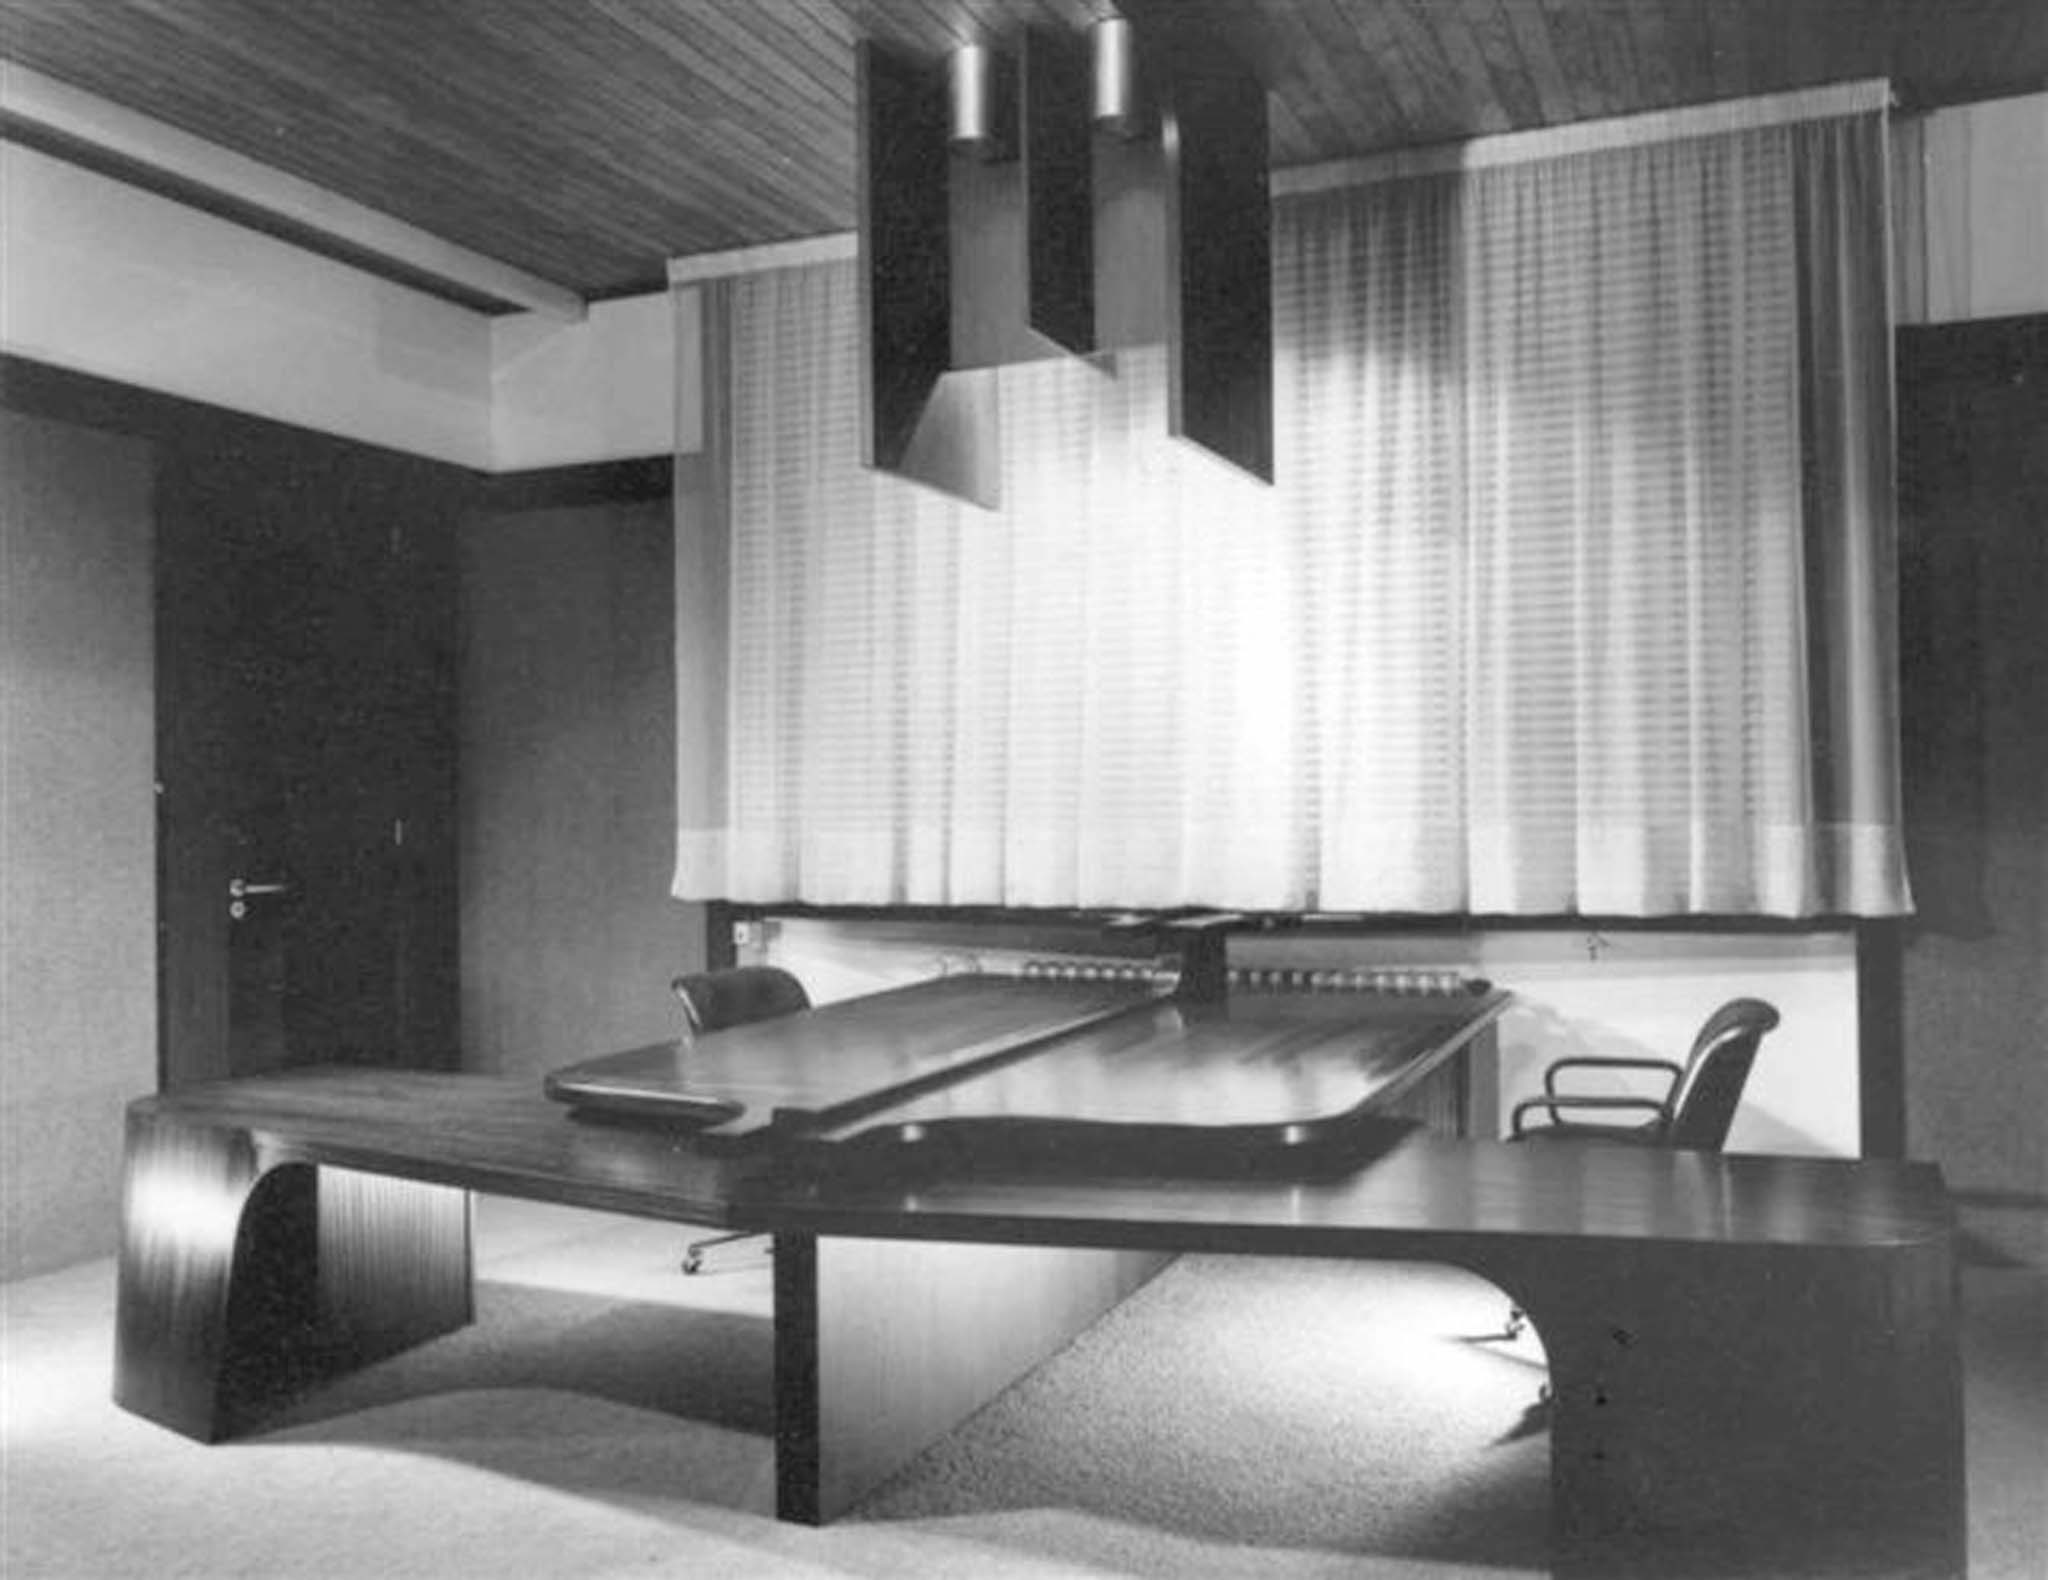 supermagasin de reims bureau directorial double dessin par claude parent. Black Bedroom Furniture Sets. Home Design Ideas